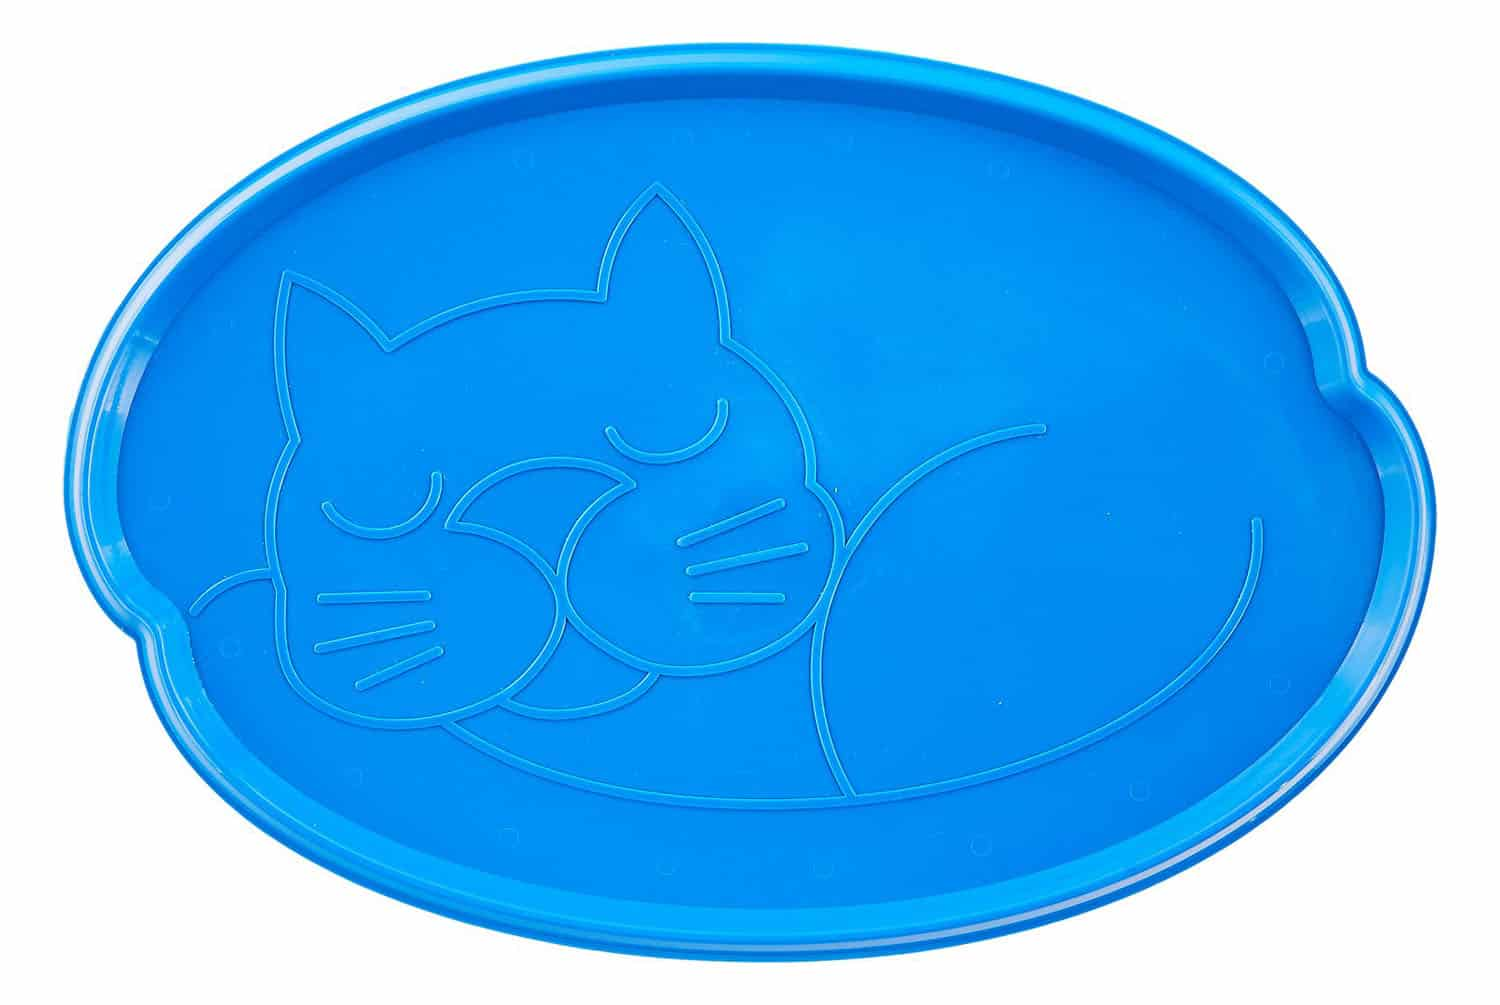 8 Best Dog Food and Water Bowl Mats in 2021 18